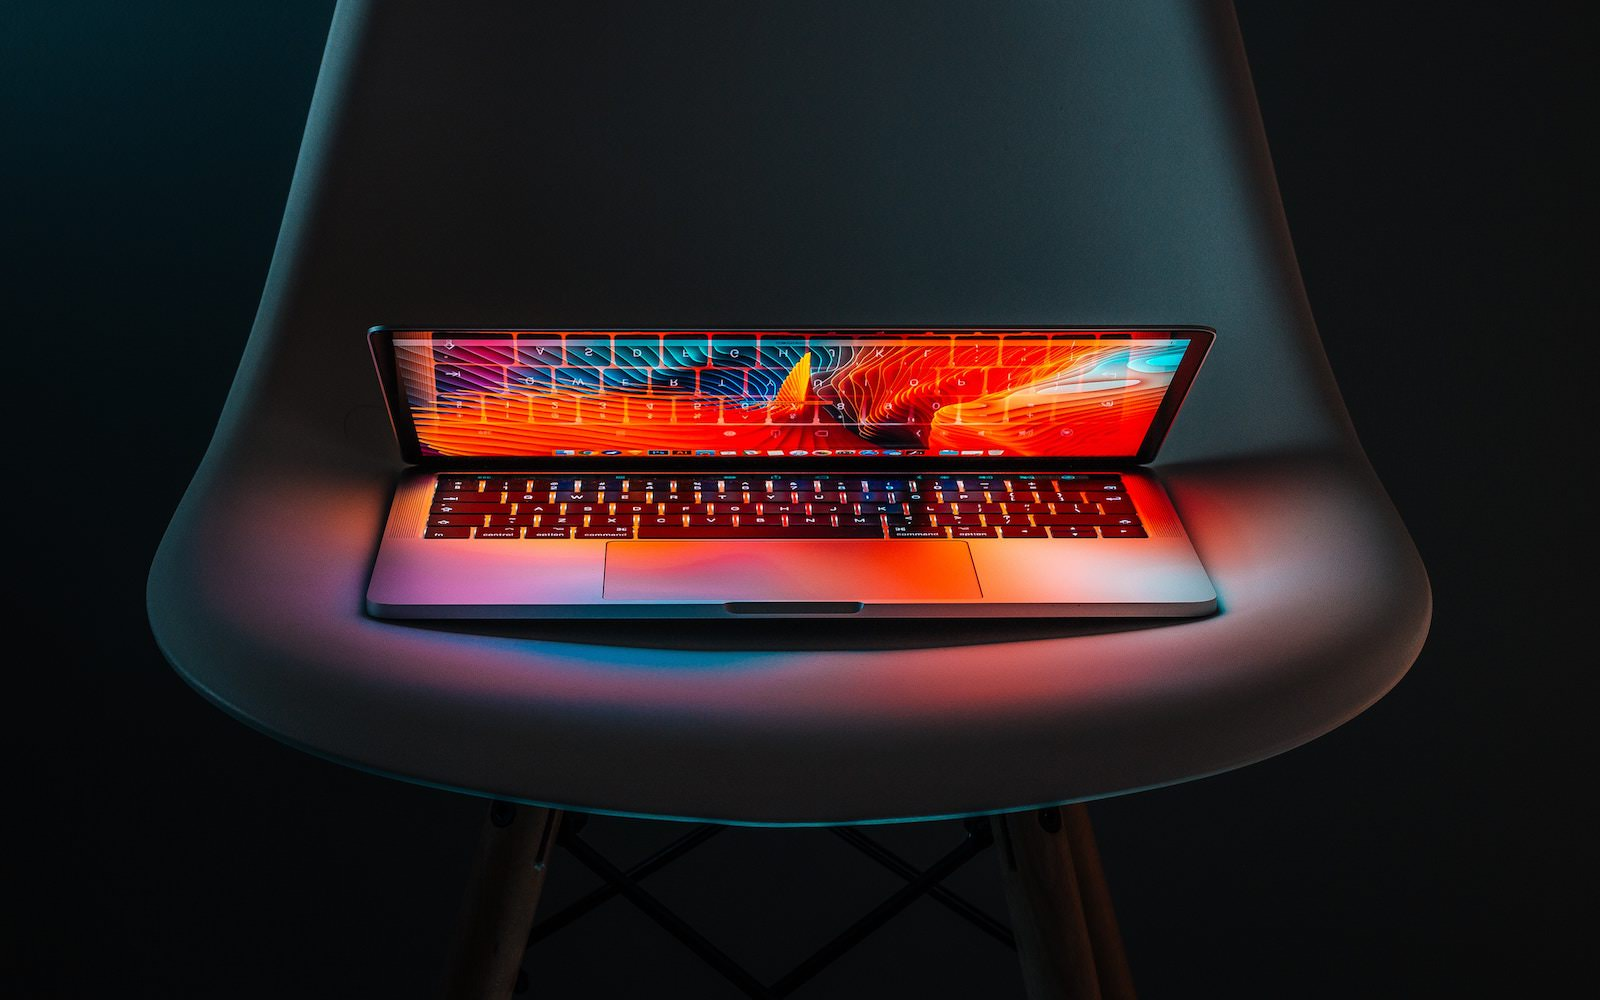 Michal kubalczyk 505207 unsplash macbook future